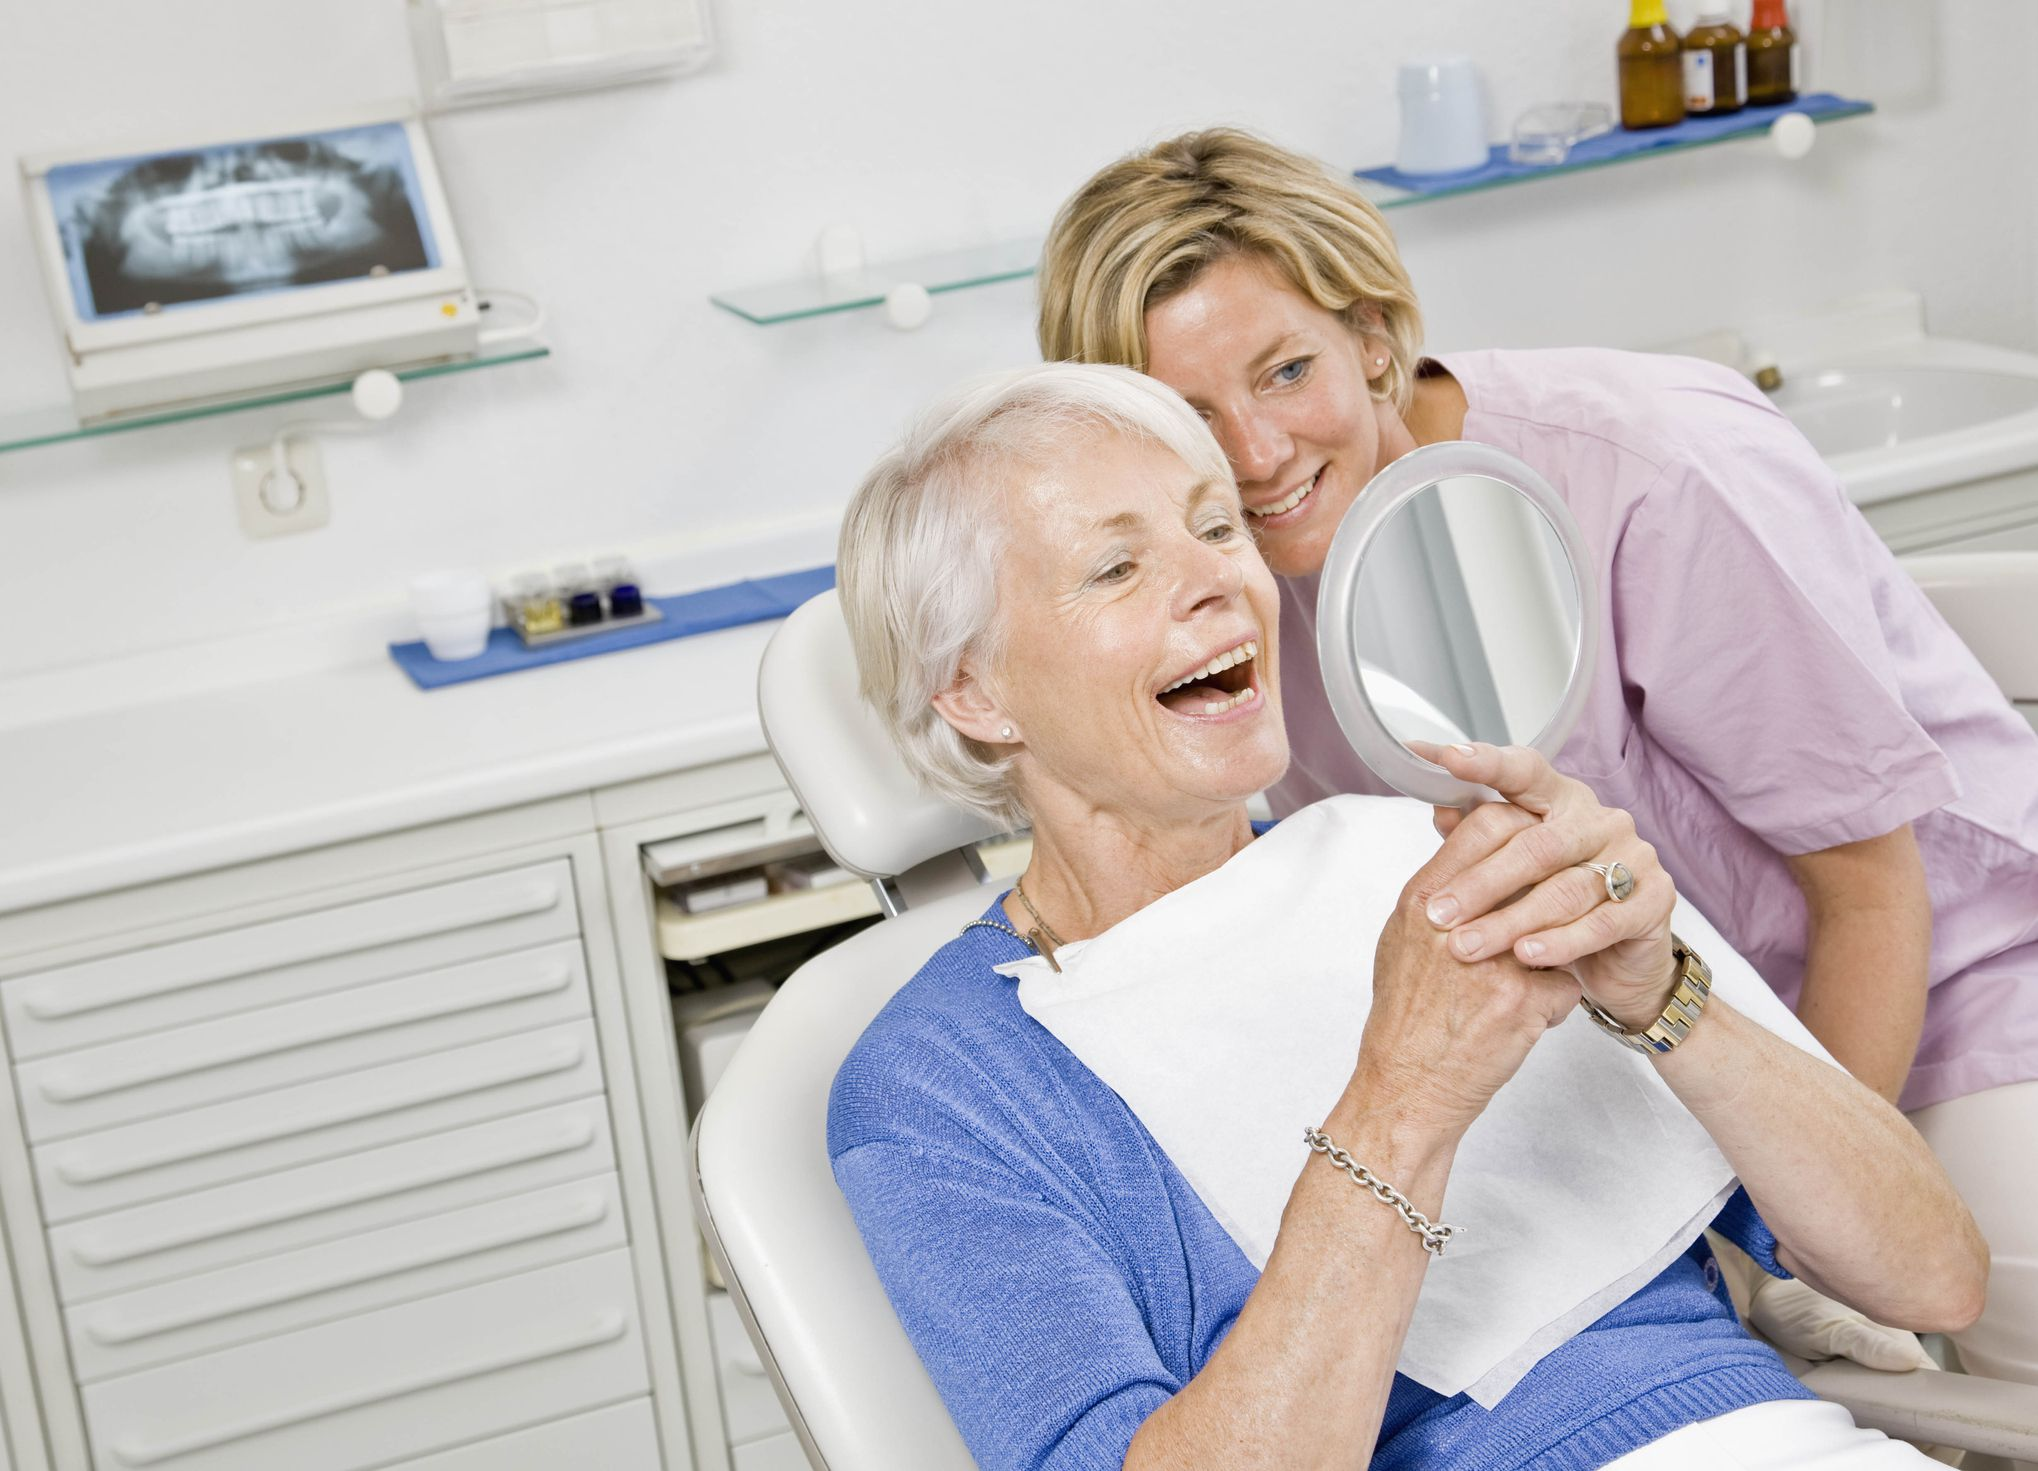 Best Dental Insurance for Seniors in 2018